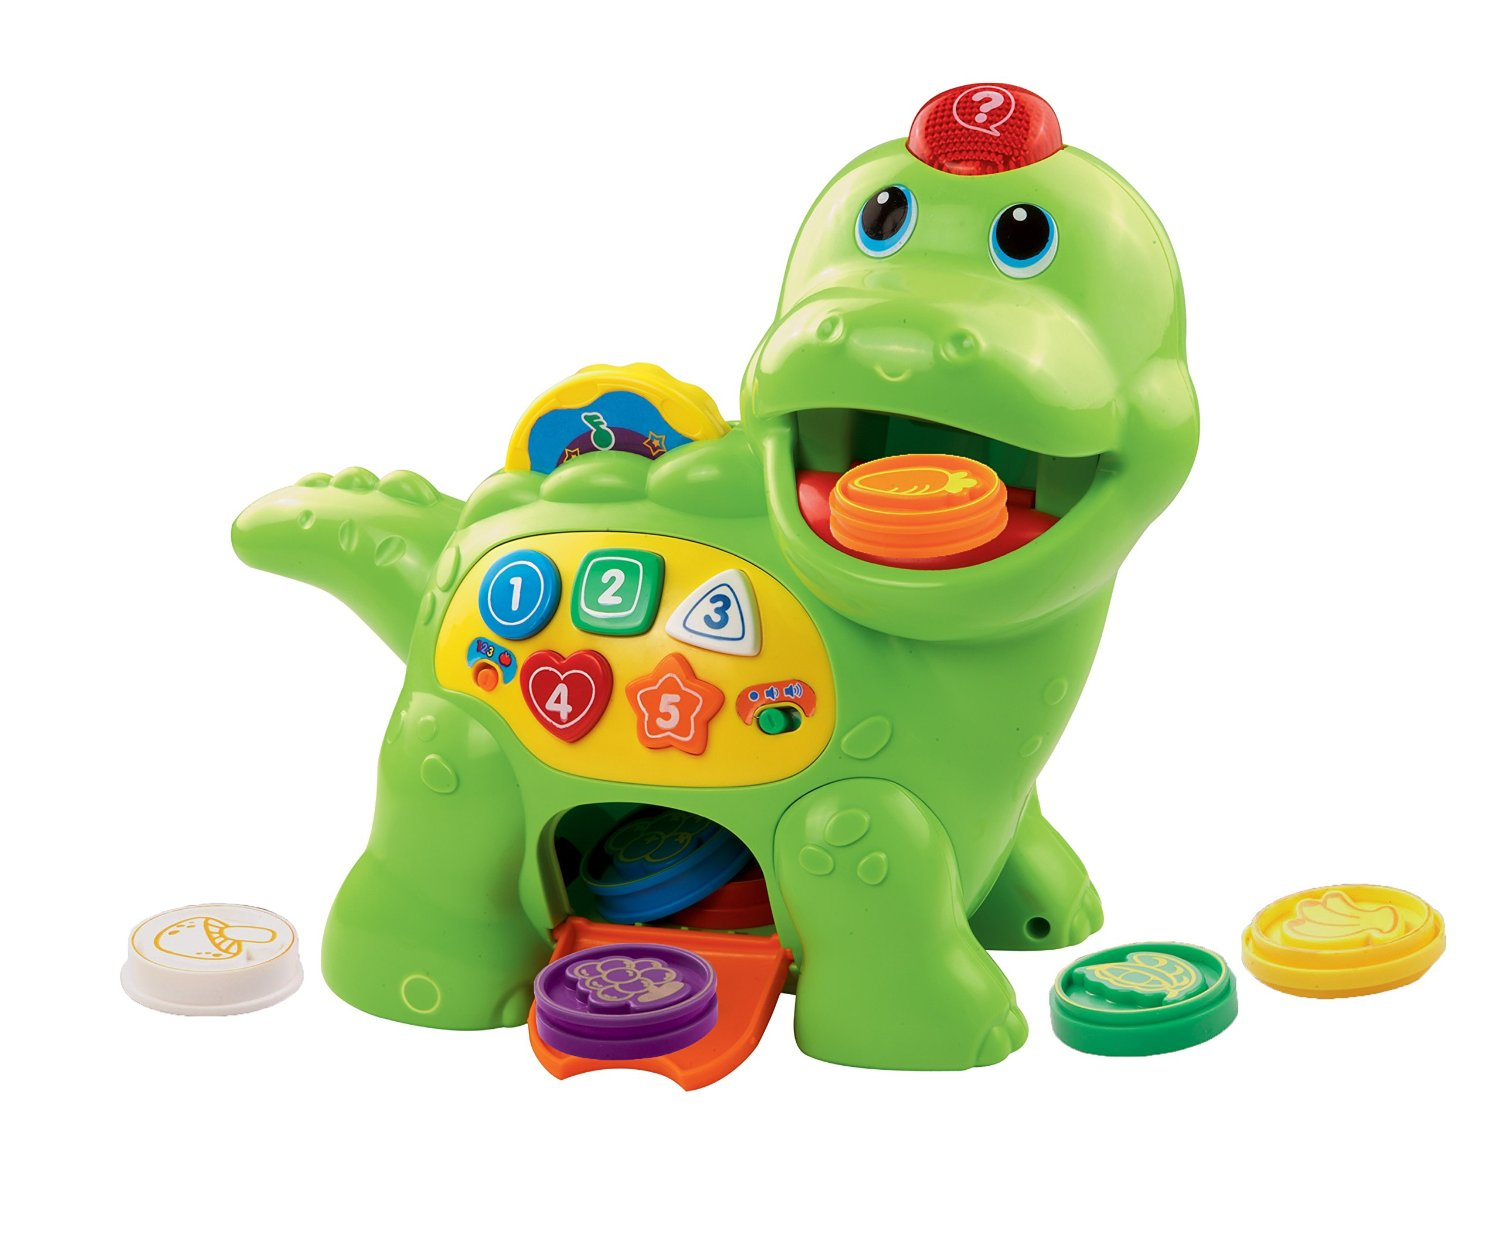 VTech Chomp and Count Dino - the perfect gift for mobile babies, ages 9-24 months